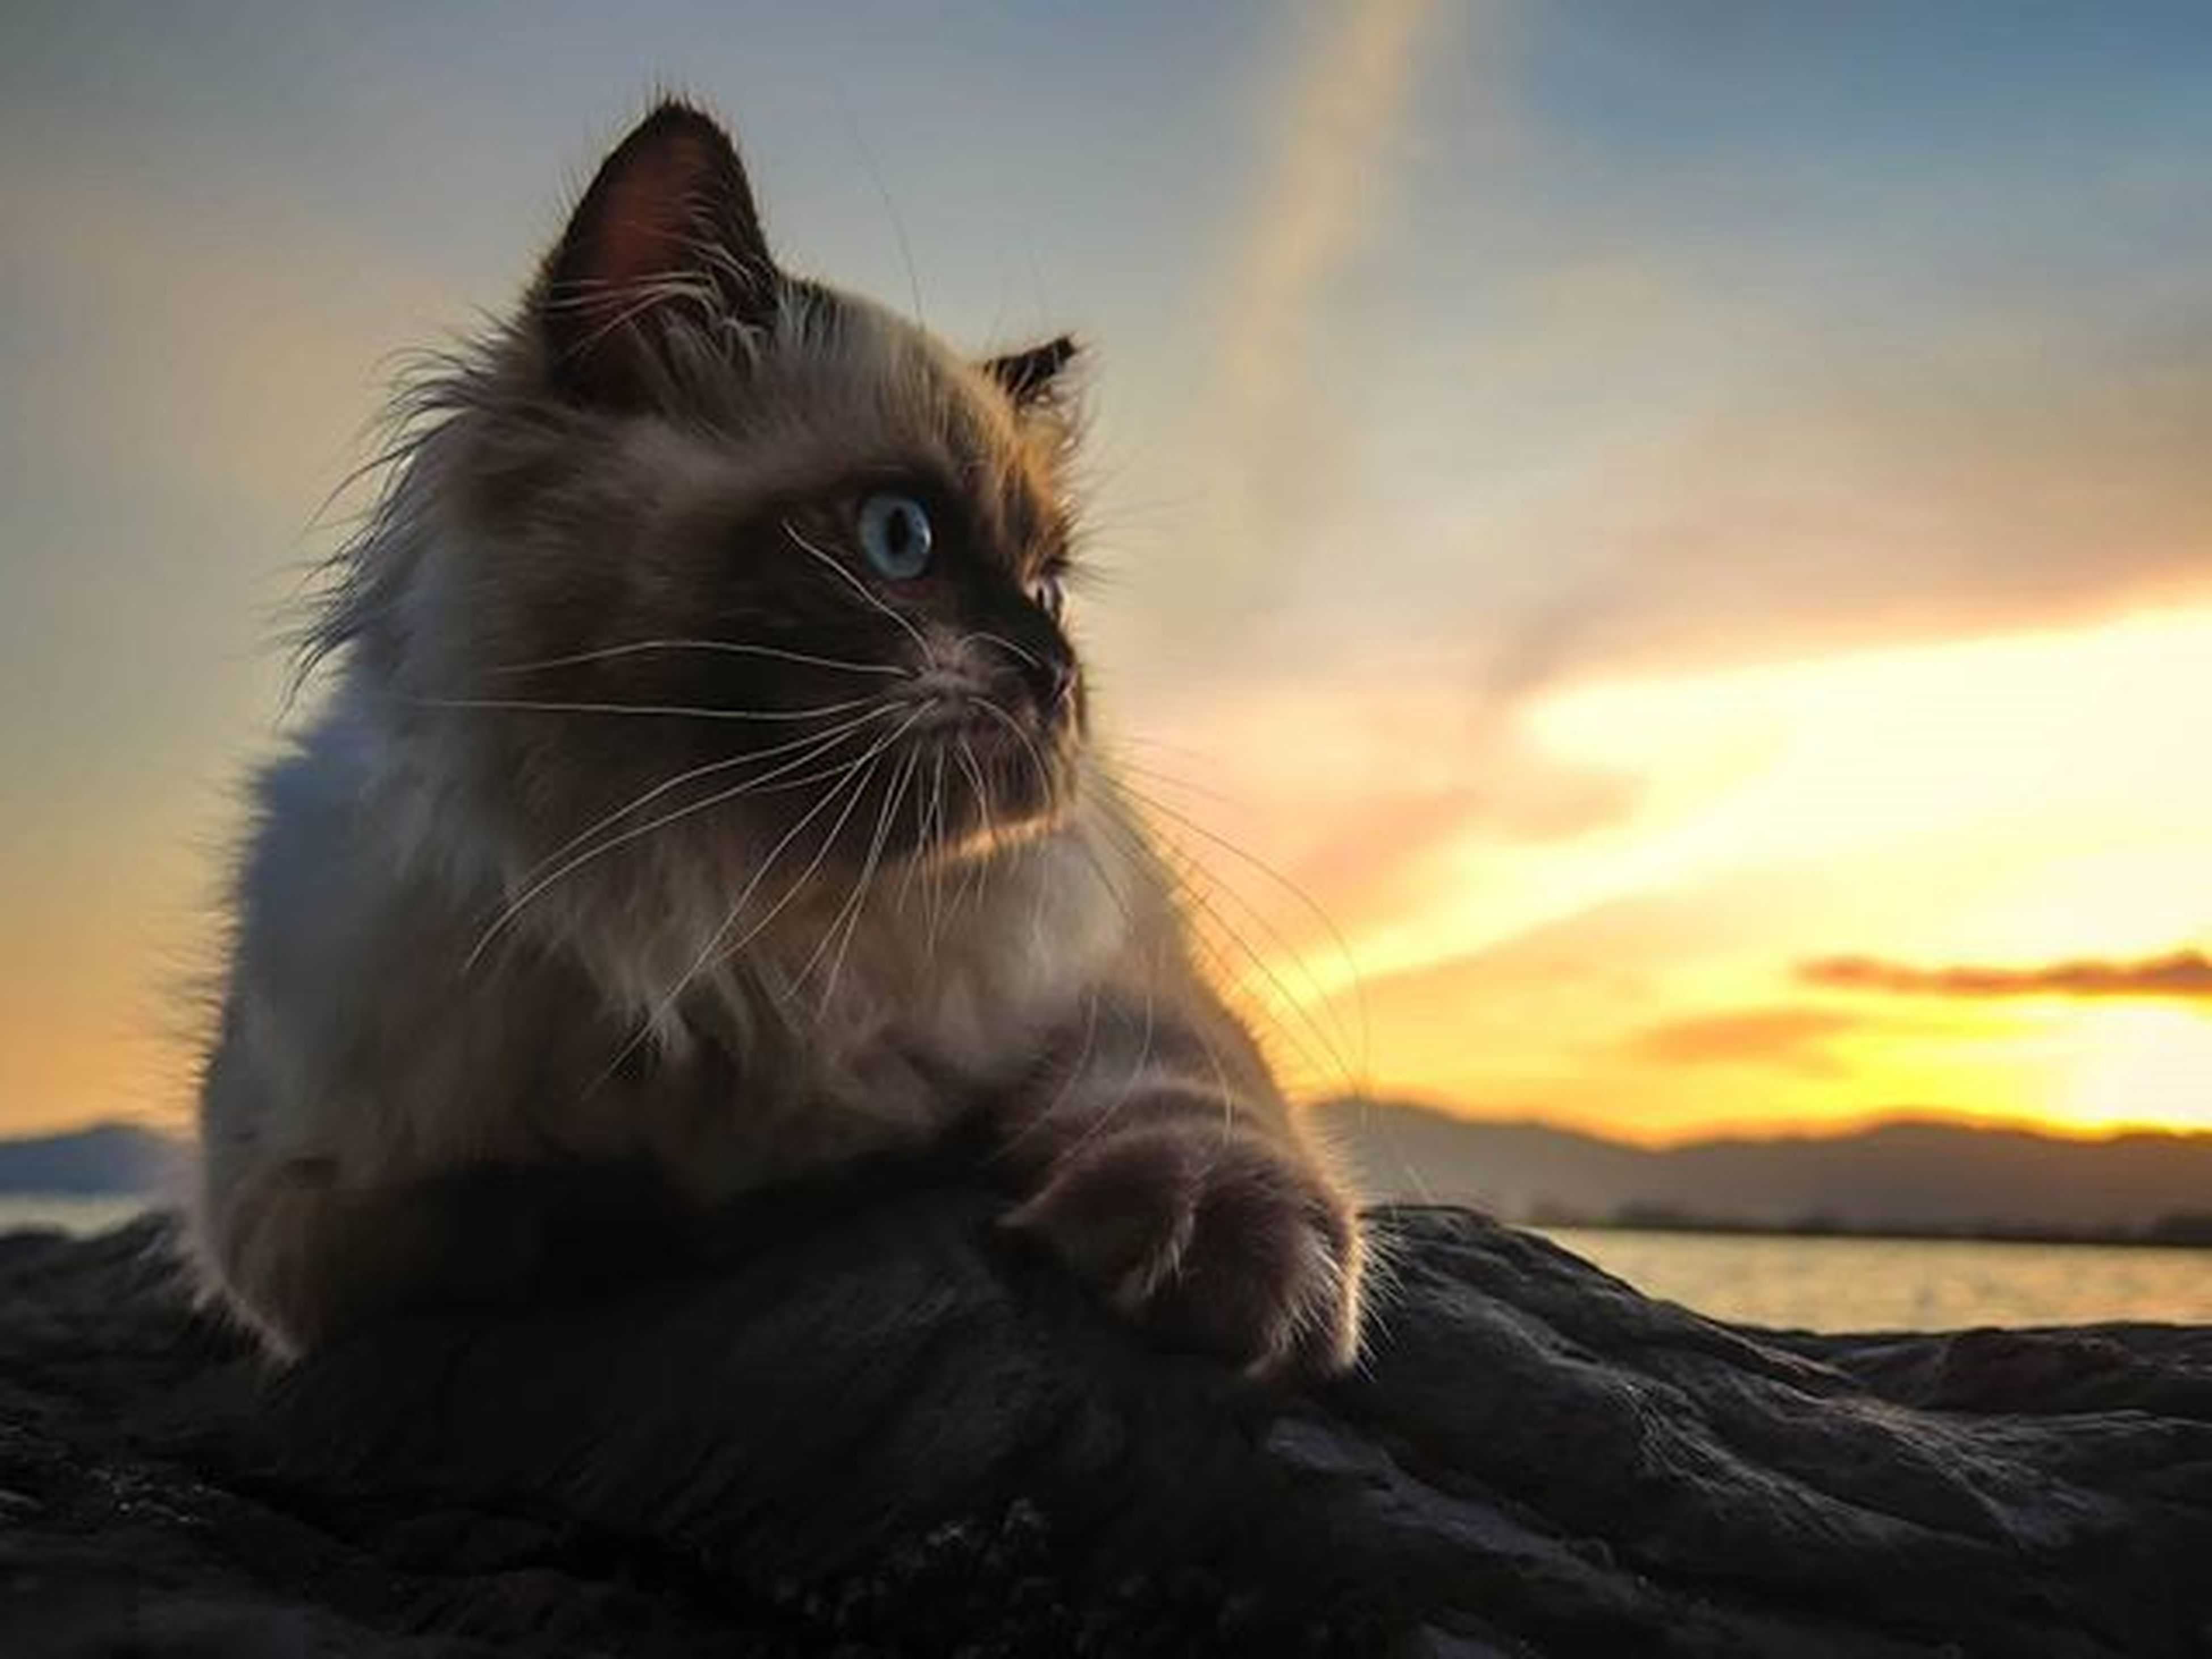 one animal, animal themes, pets, mammal, domestic cat, domestic animals, feline, cat, sunset, whisker, focus on foreground, looking away, sky, relaxation, close-up, nature, sitting, no people, outdoors, side view